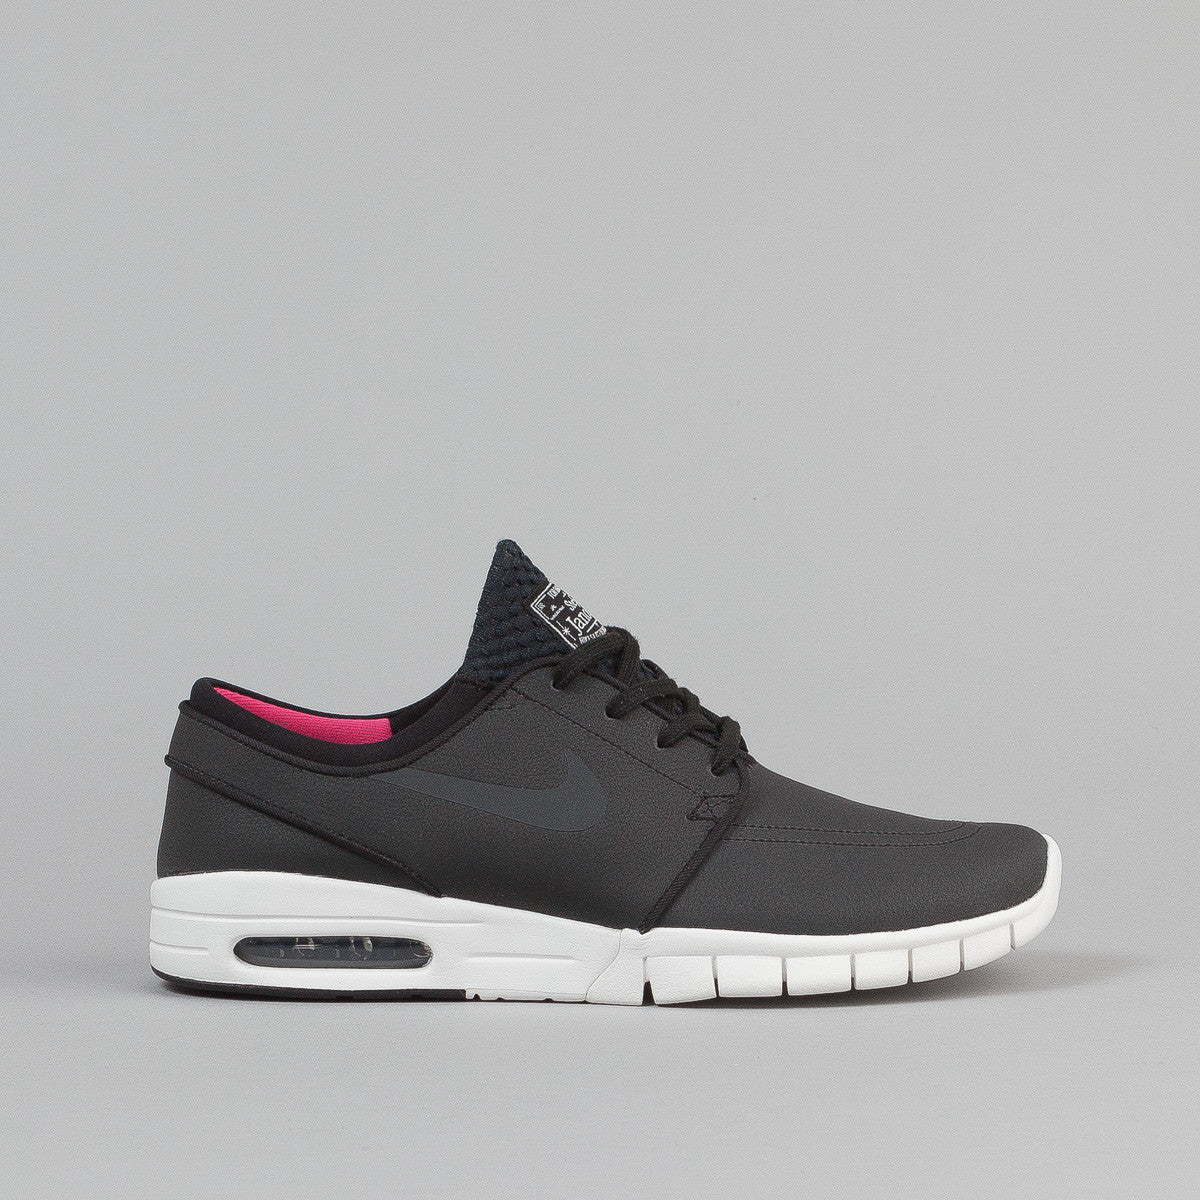 Nike SB Stefan Janoski Max Suede Shoes - Black/Anthracite-Summit White-Hyper Pink